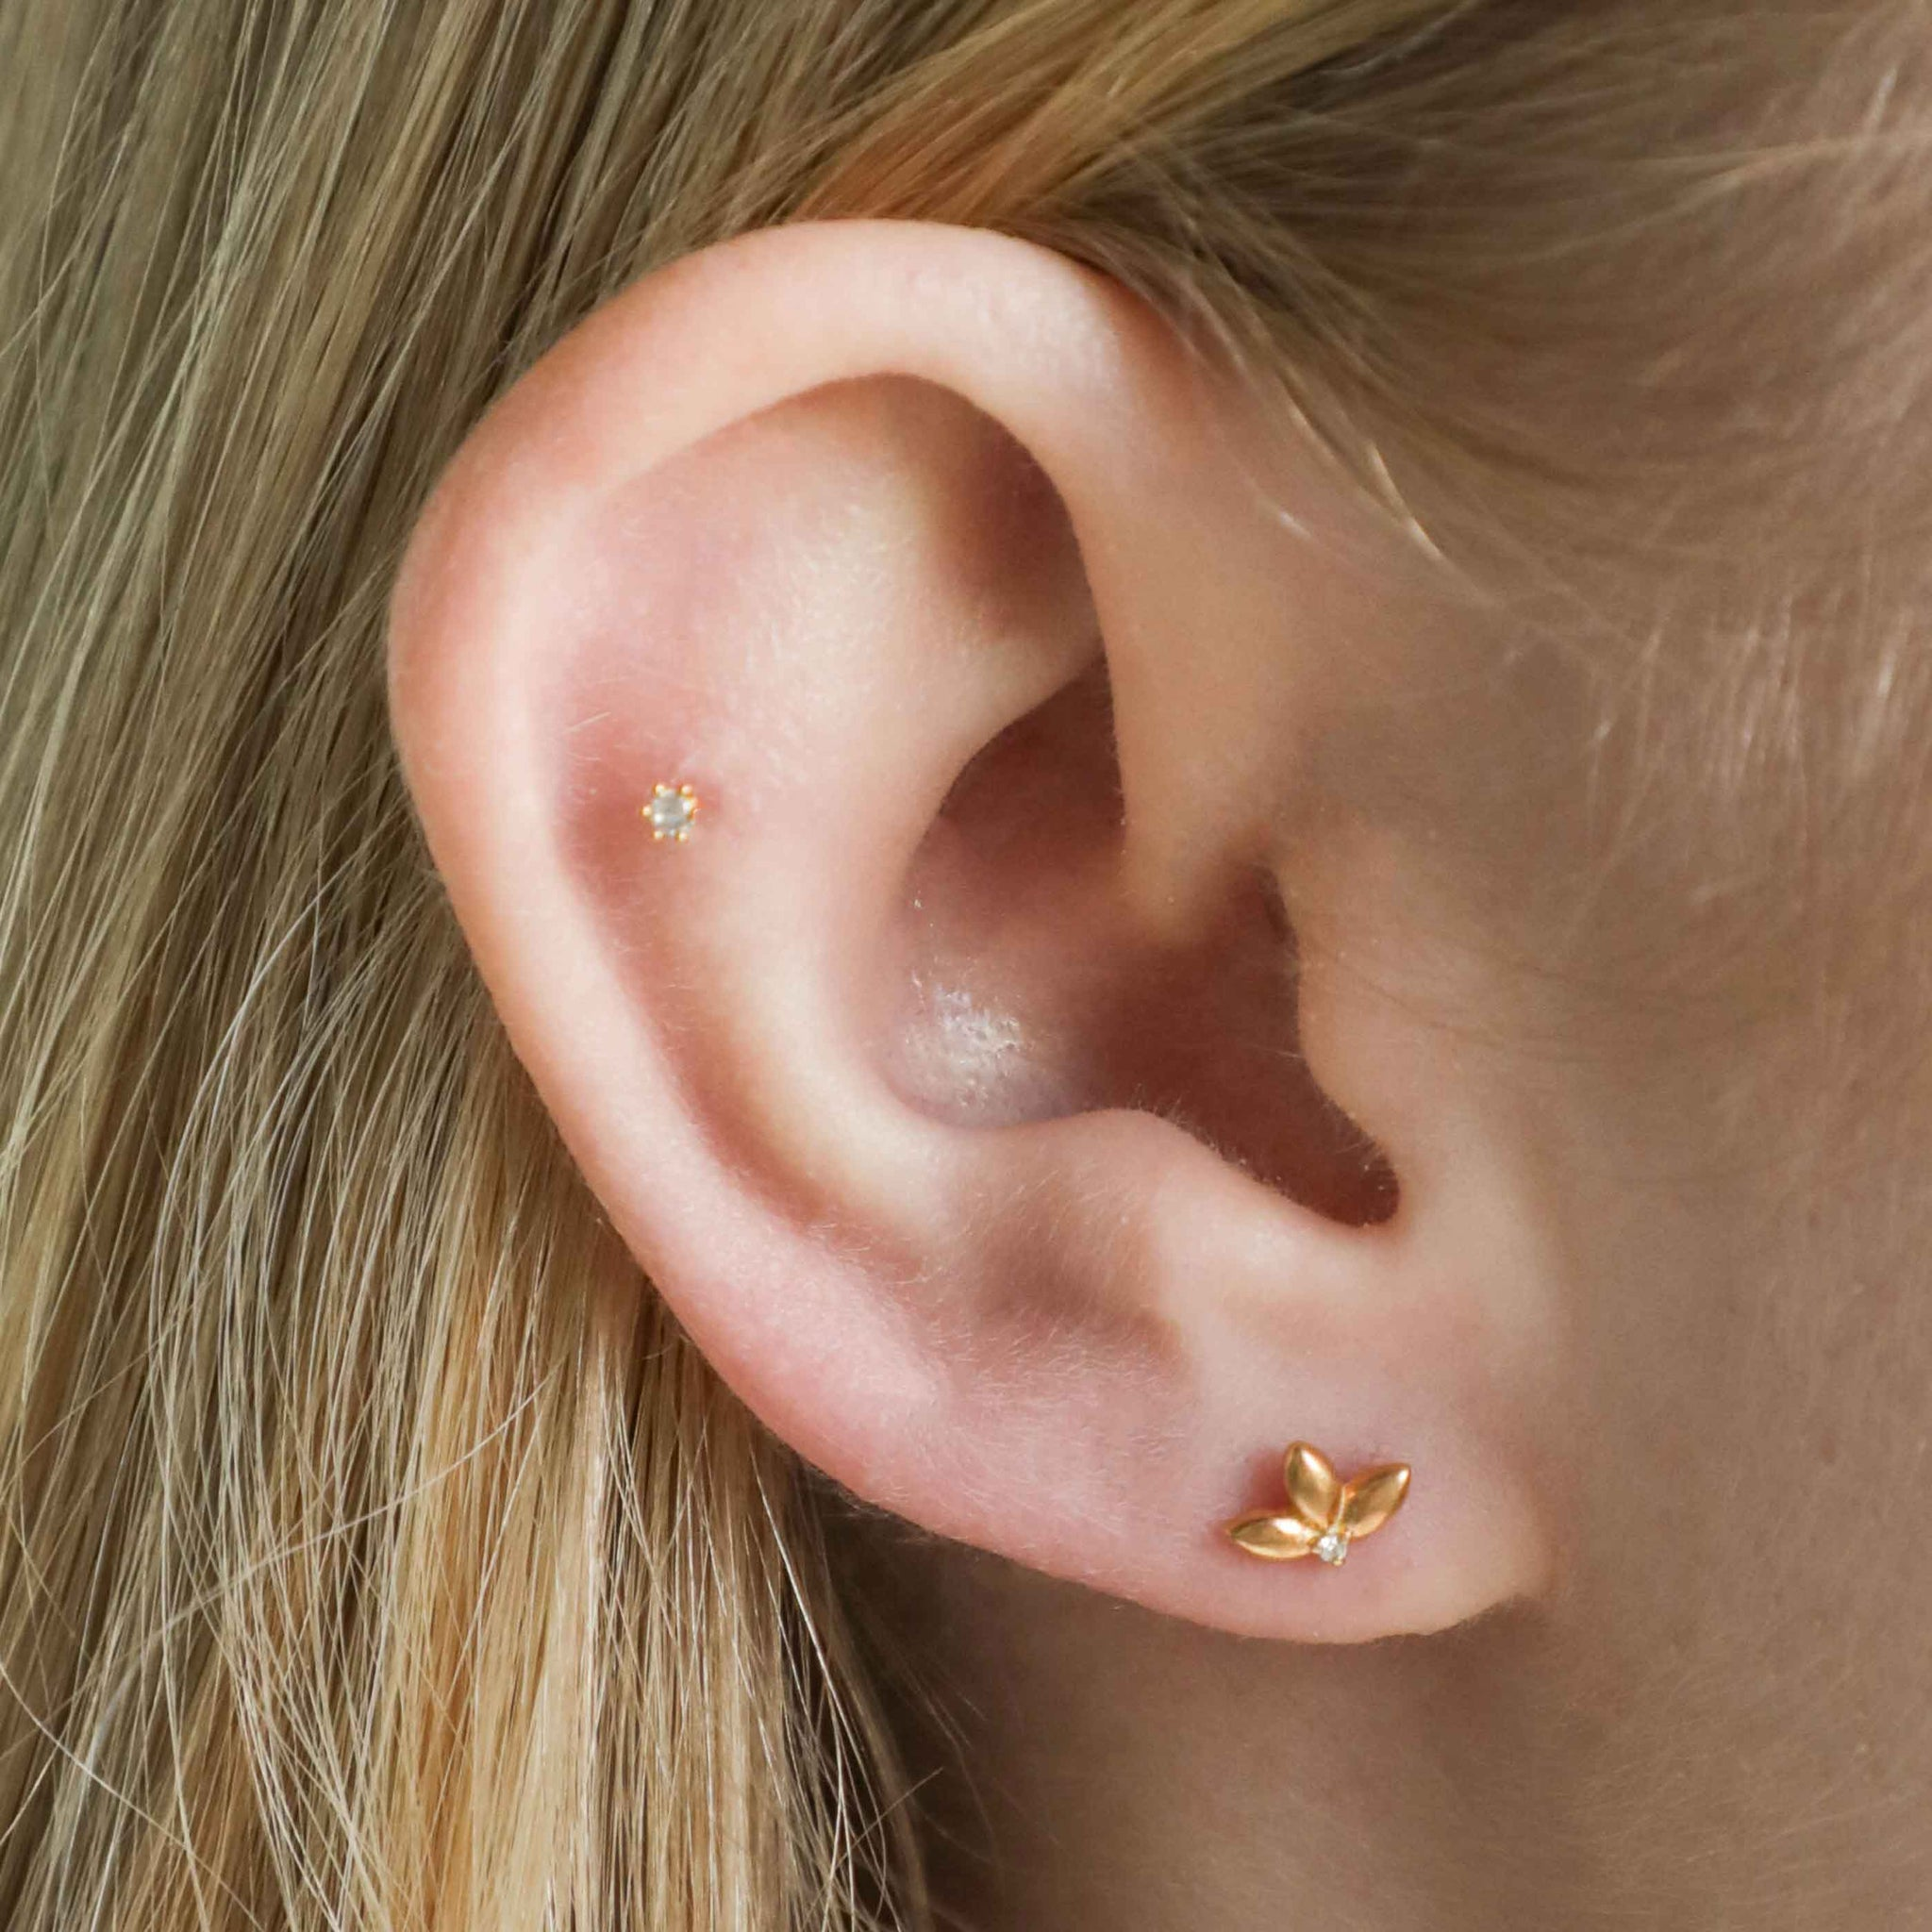 Botanist Barbell in Gold worn in first lobe piercing